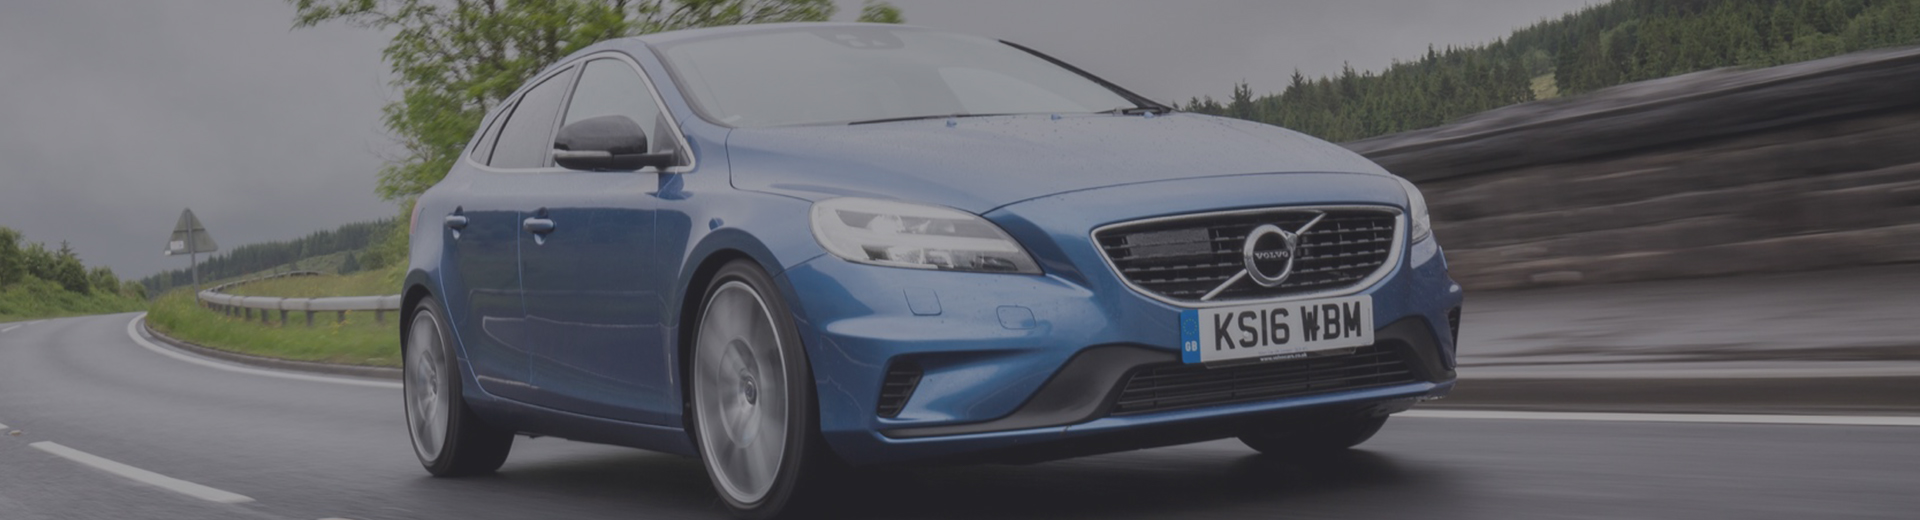 Volvo v40 deals scotland eating out deals in glasgow city centre check specs prices performance and compare with similar cars fandeluxe Gallery